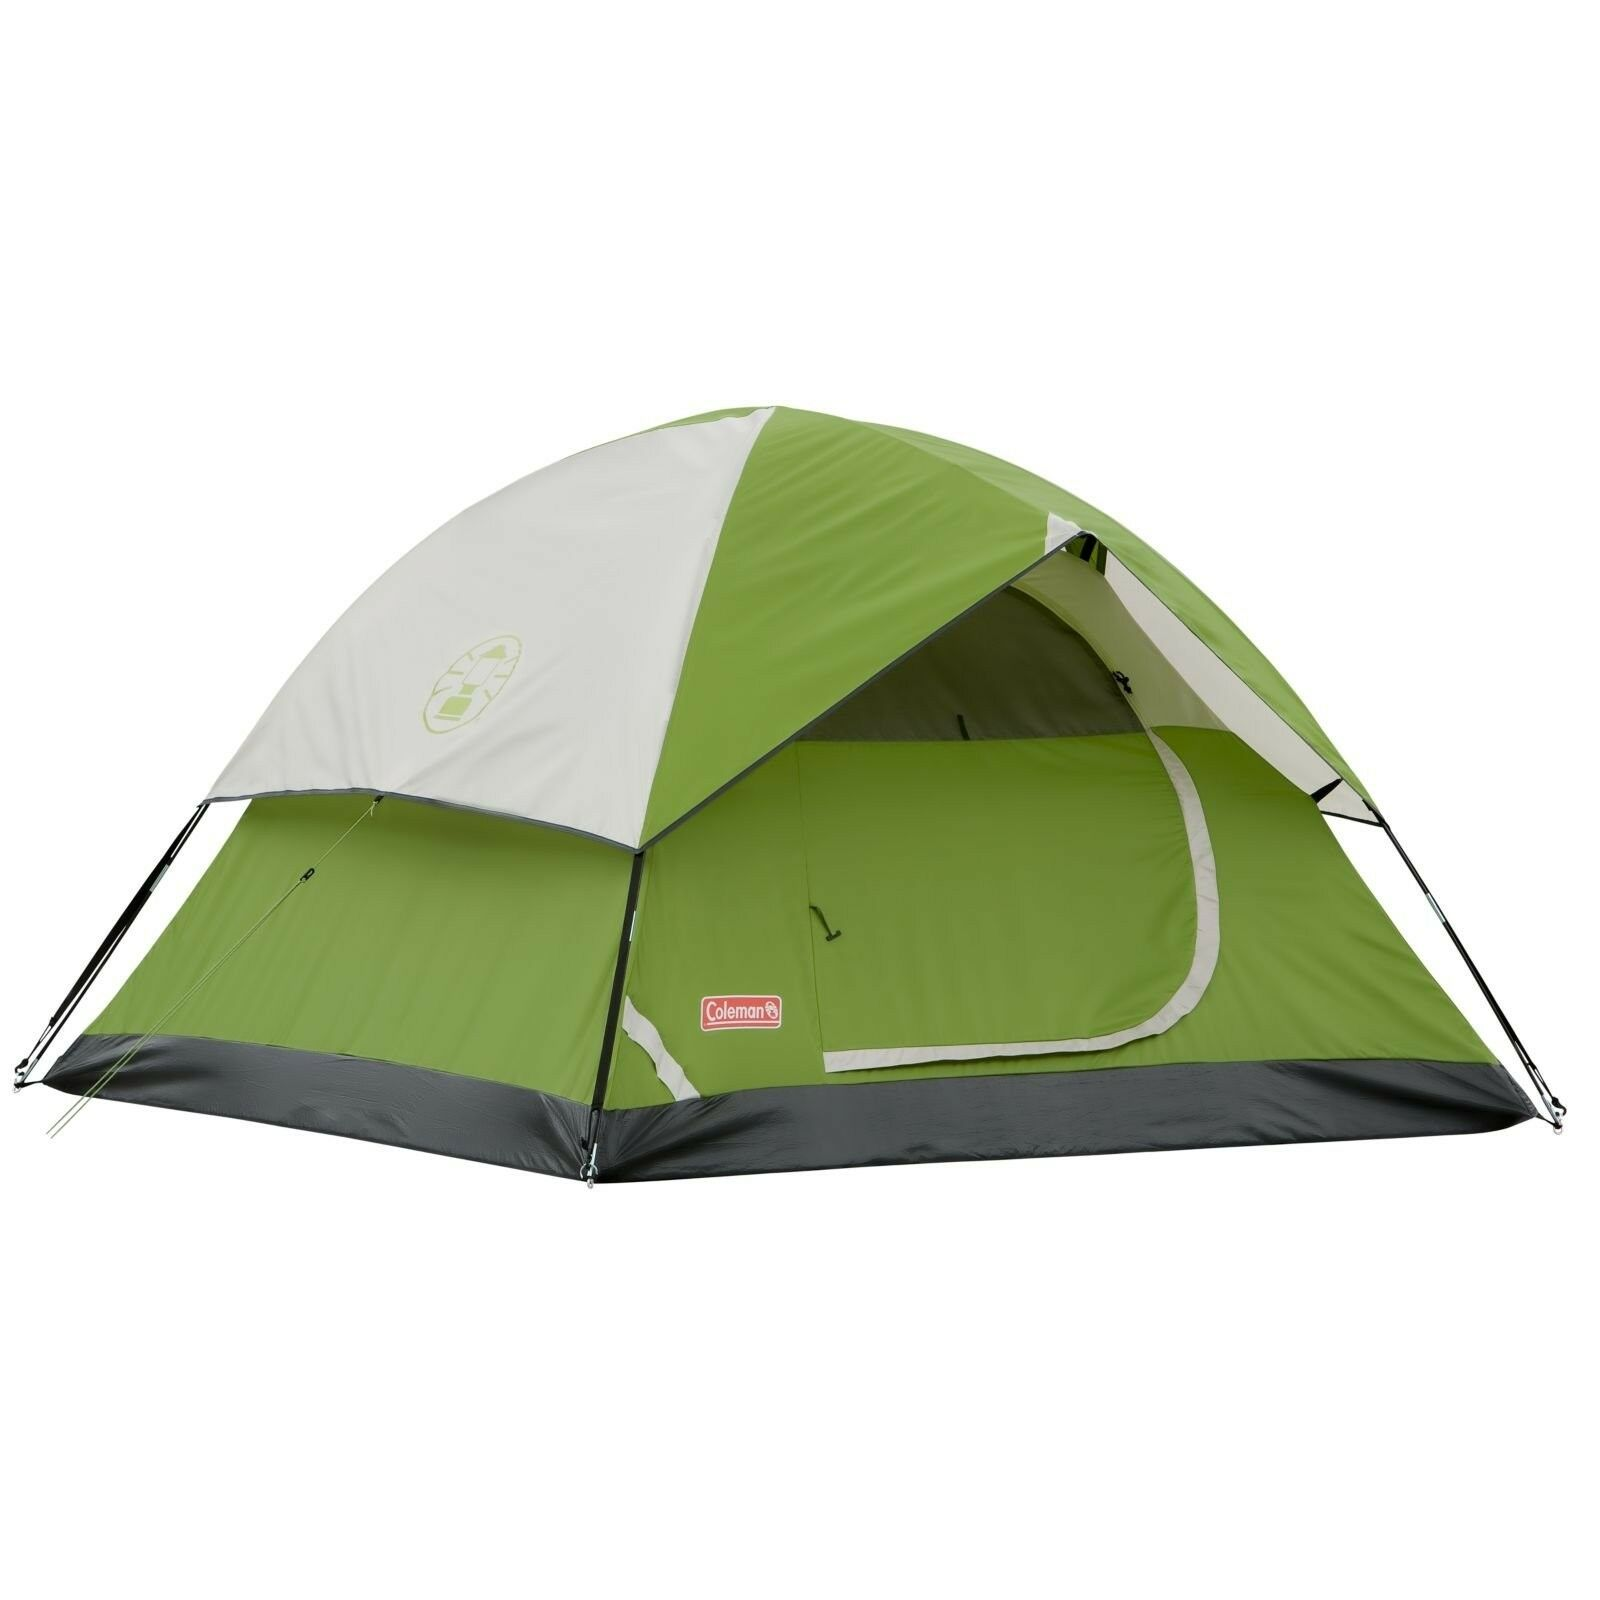 New Coleman Sundome Tent Green 4-Person - Clearance  Ships FAST